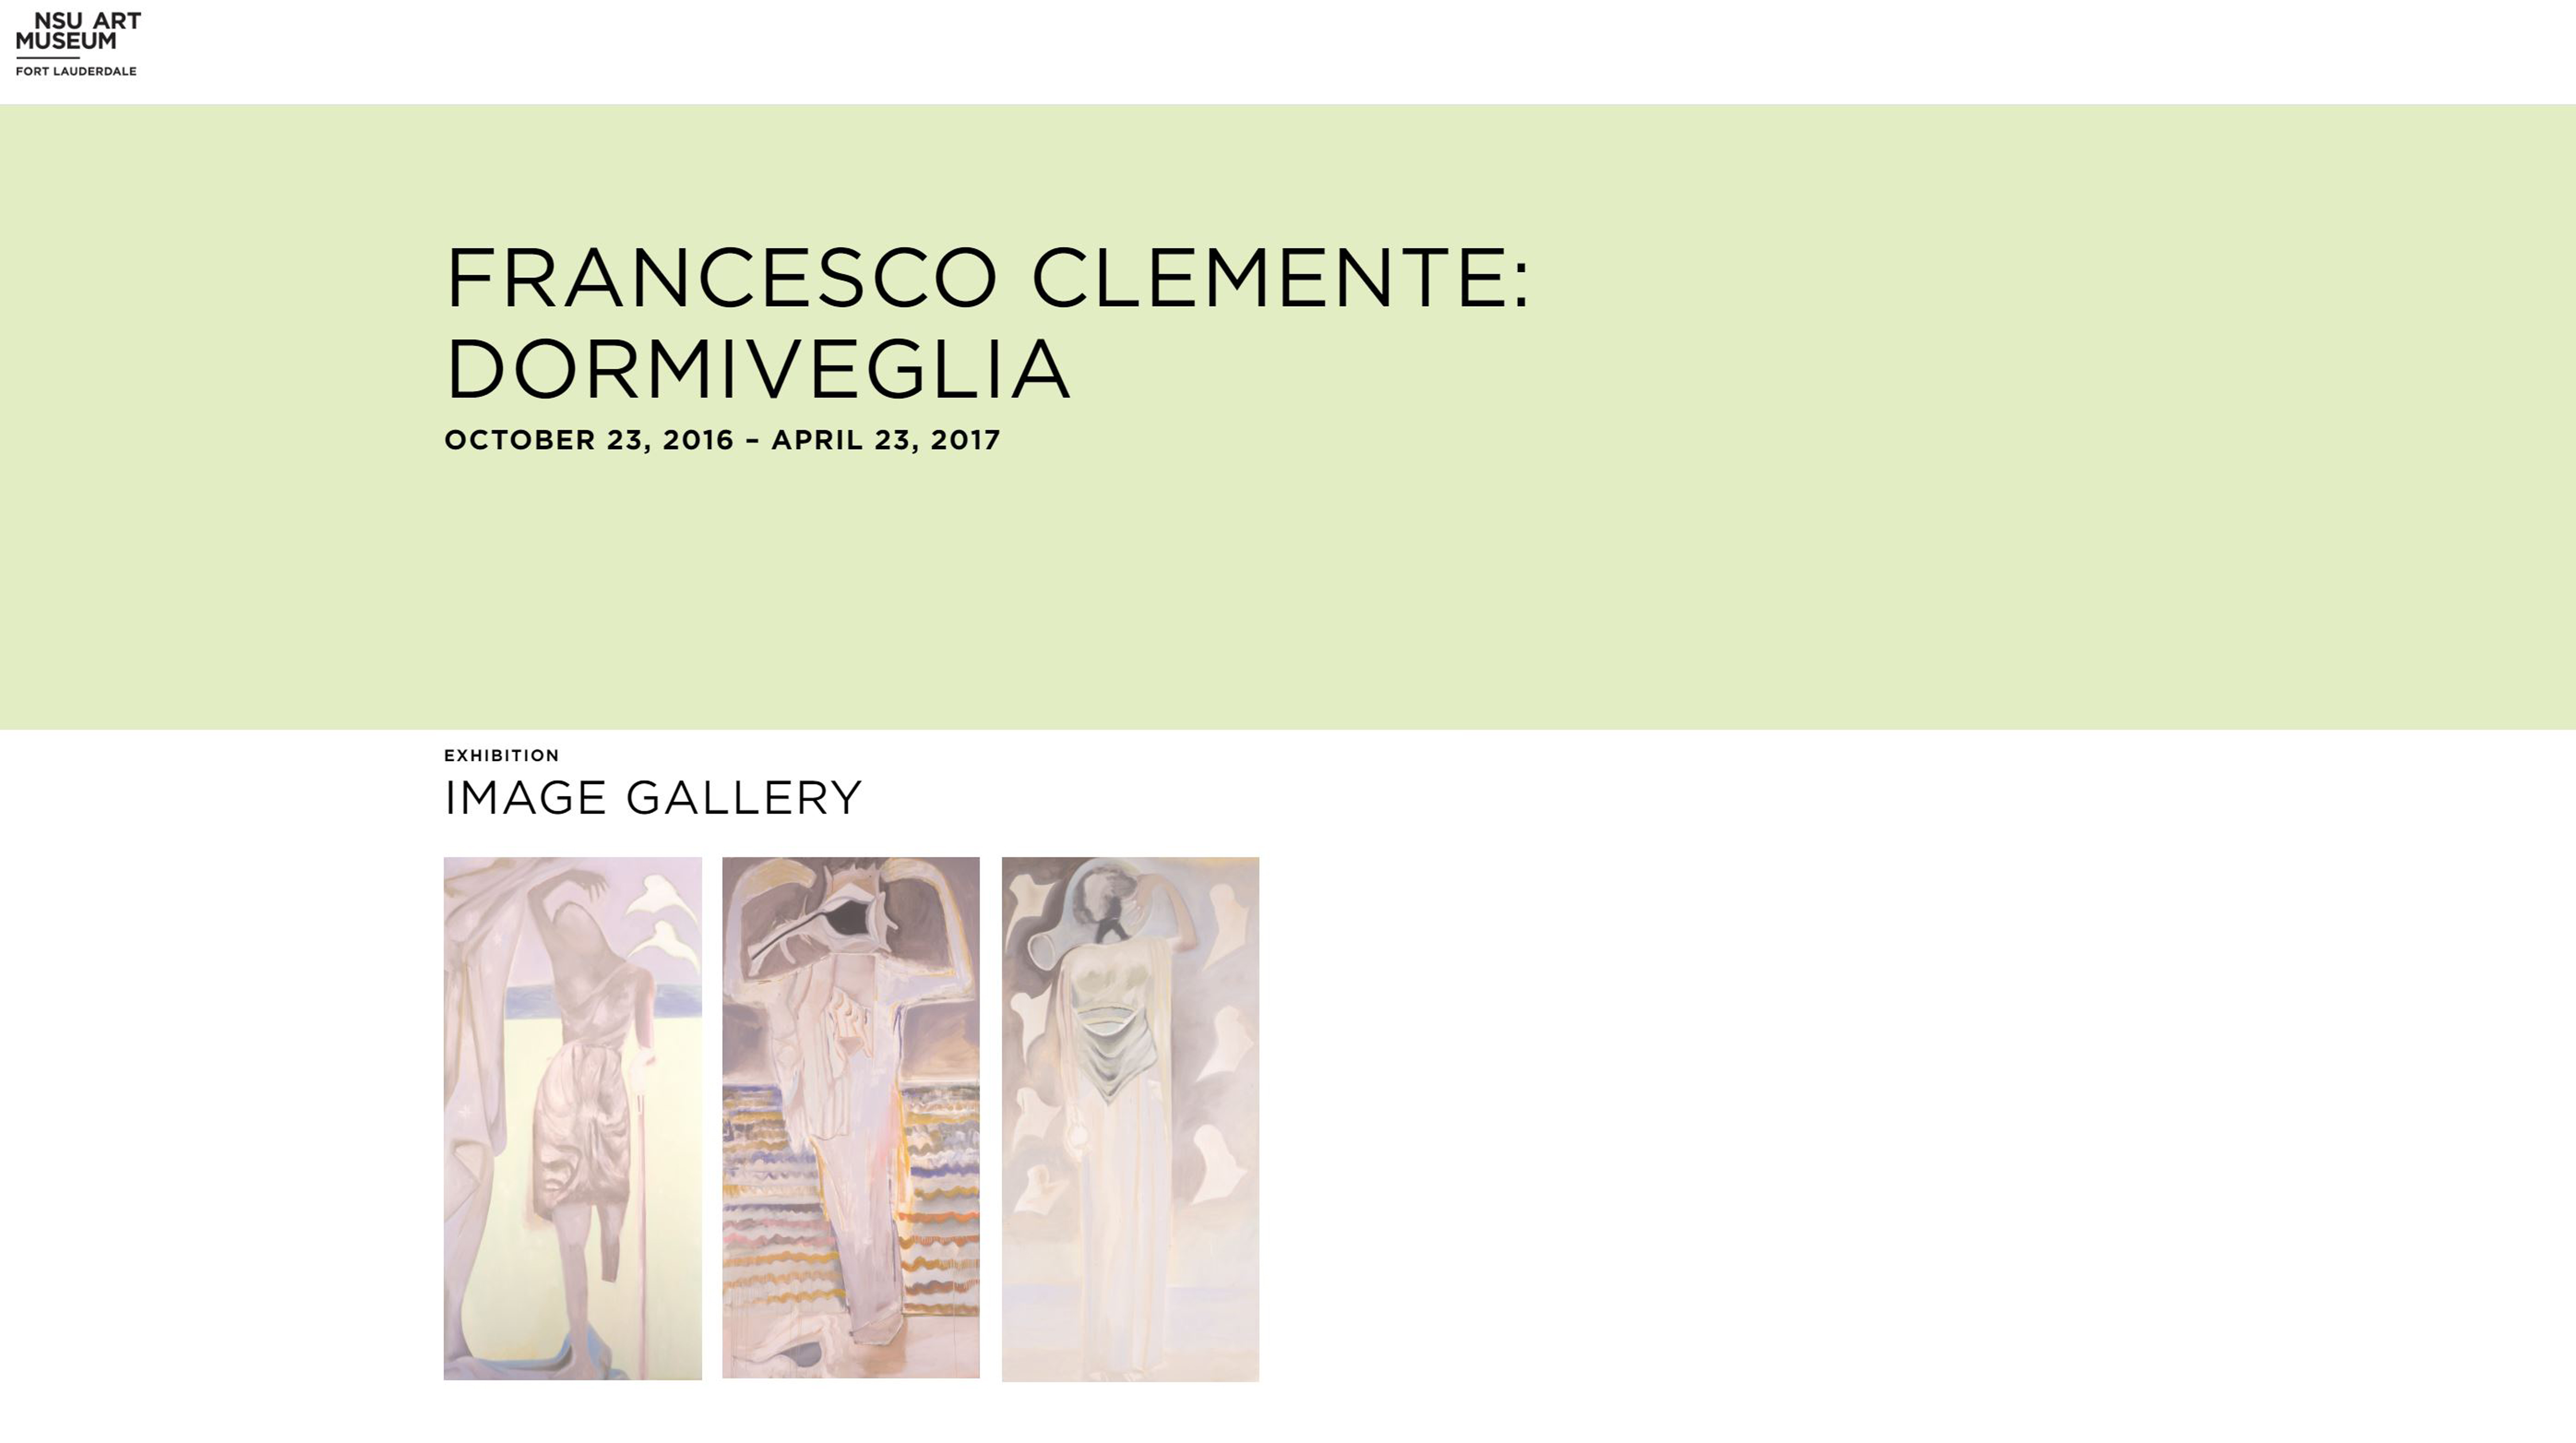 Francesco Clemente at NSU Art Museum Fort Lauderdale